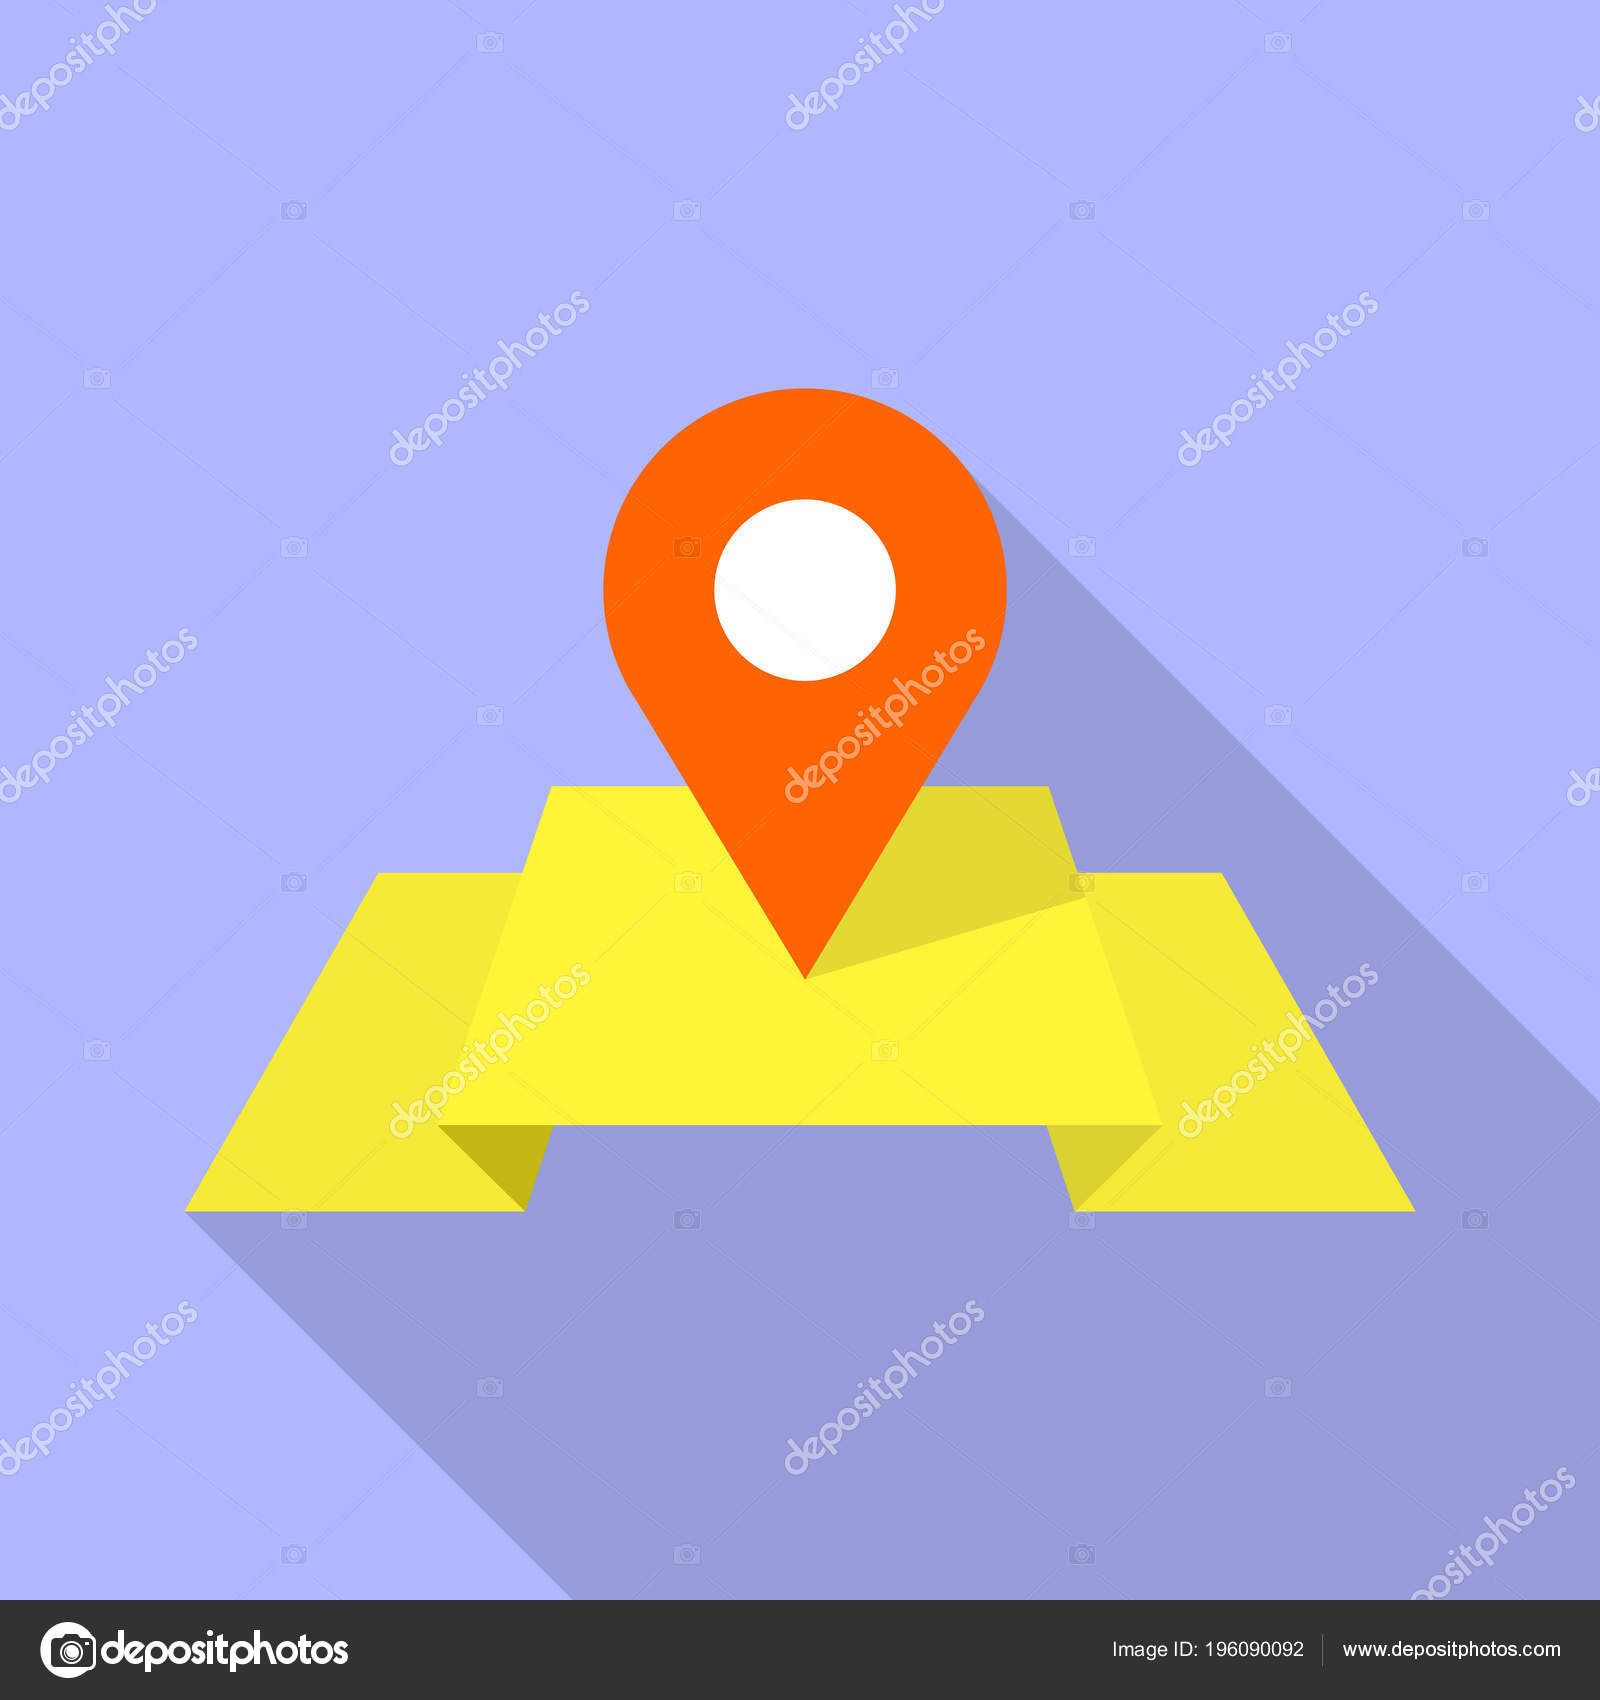 red pin on yellow map icon flat style stock vector ylivdesign